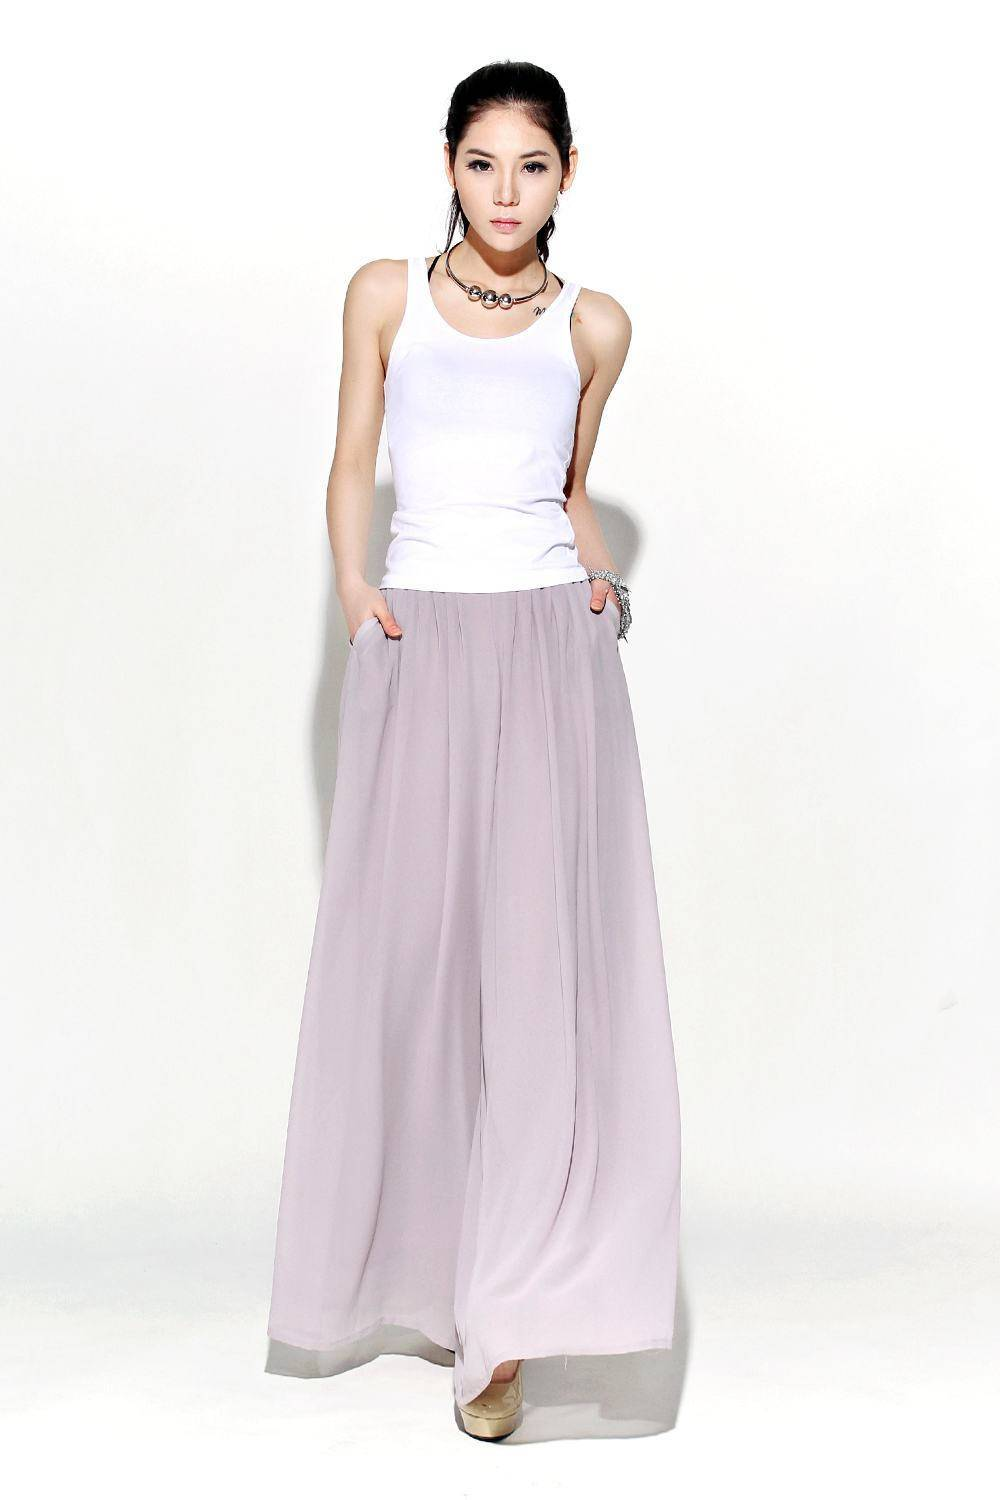 Gray Chiffon Palazzo Pants - Elegant Wide-Leg Maxi Pants Long Culottes Mother-of-the-Bride Wedding Outfit (C114)